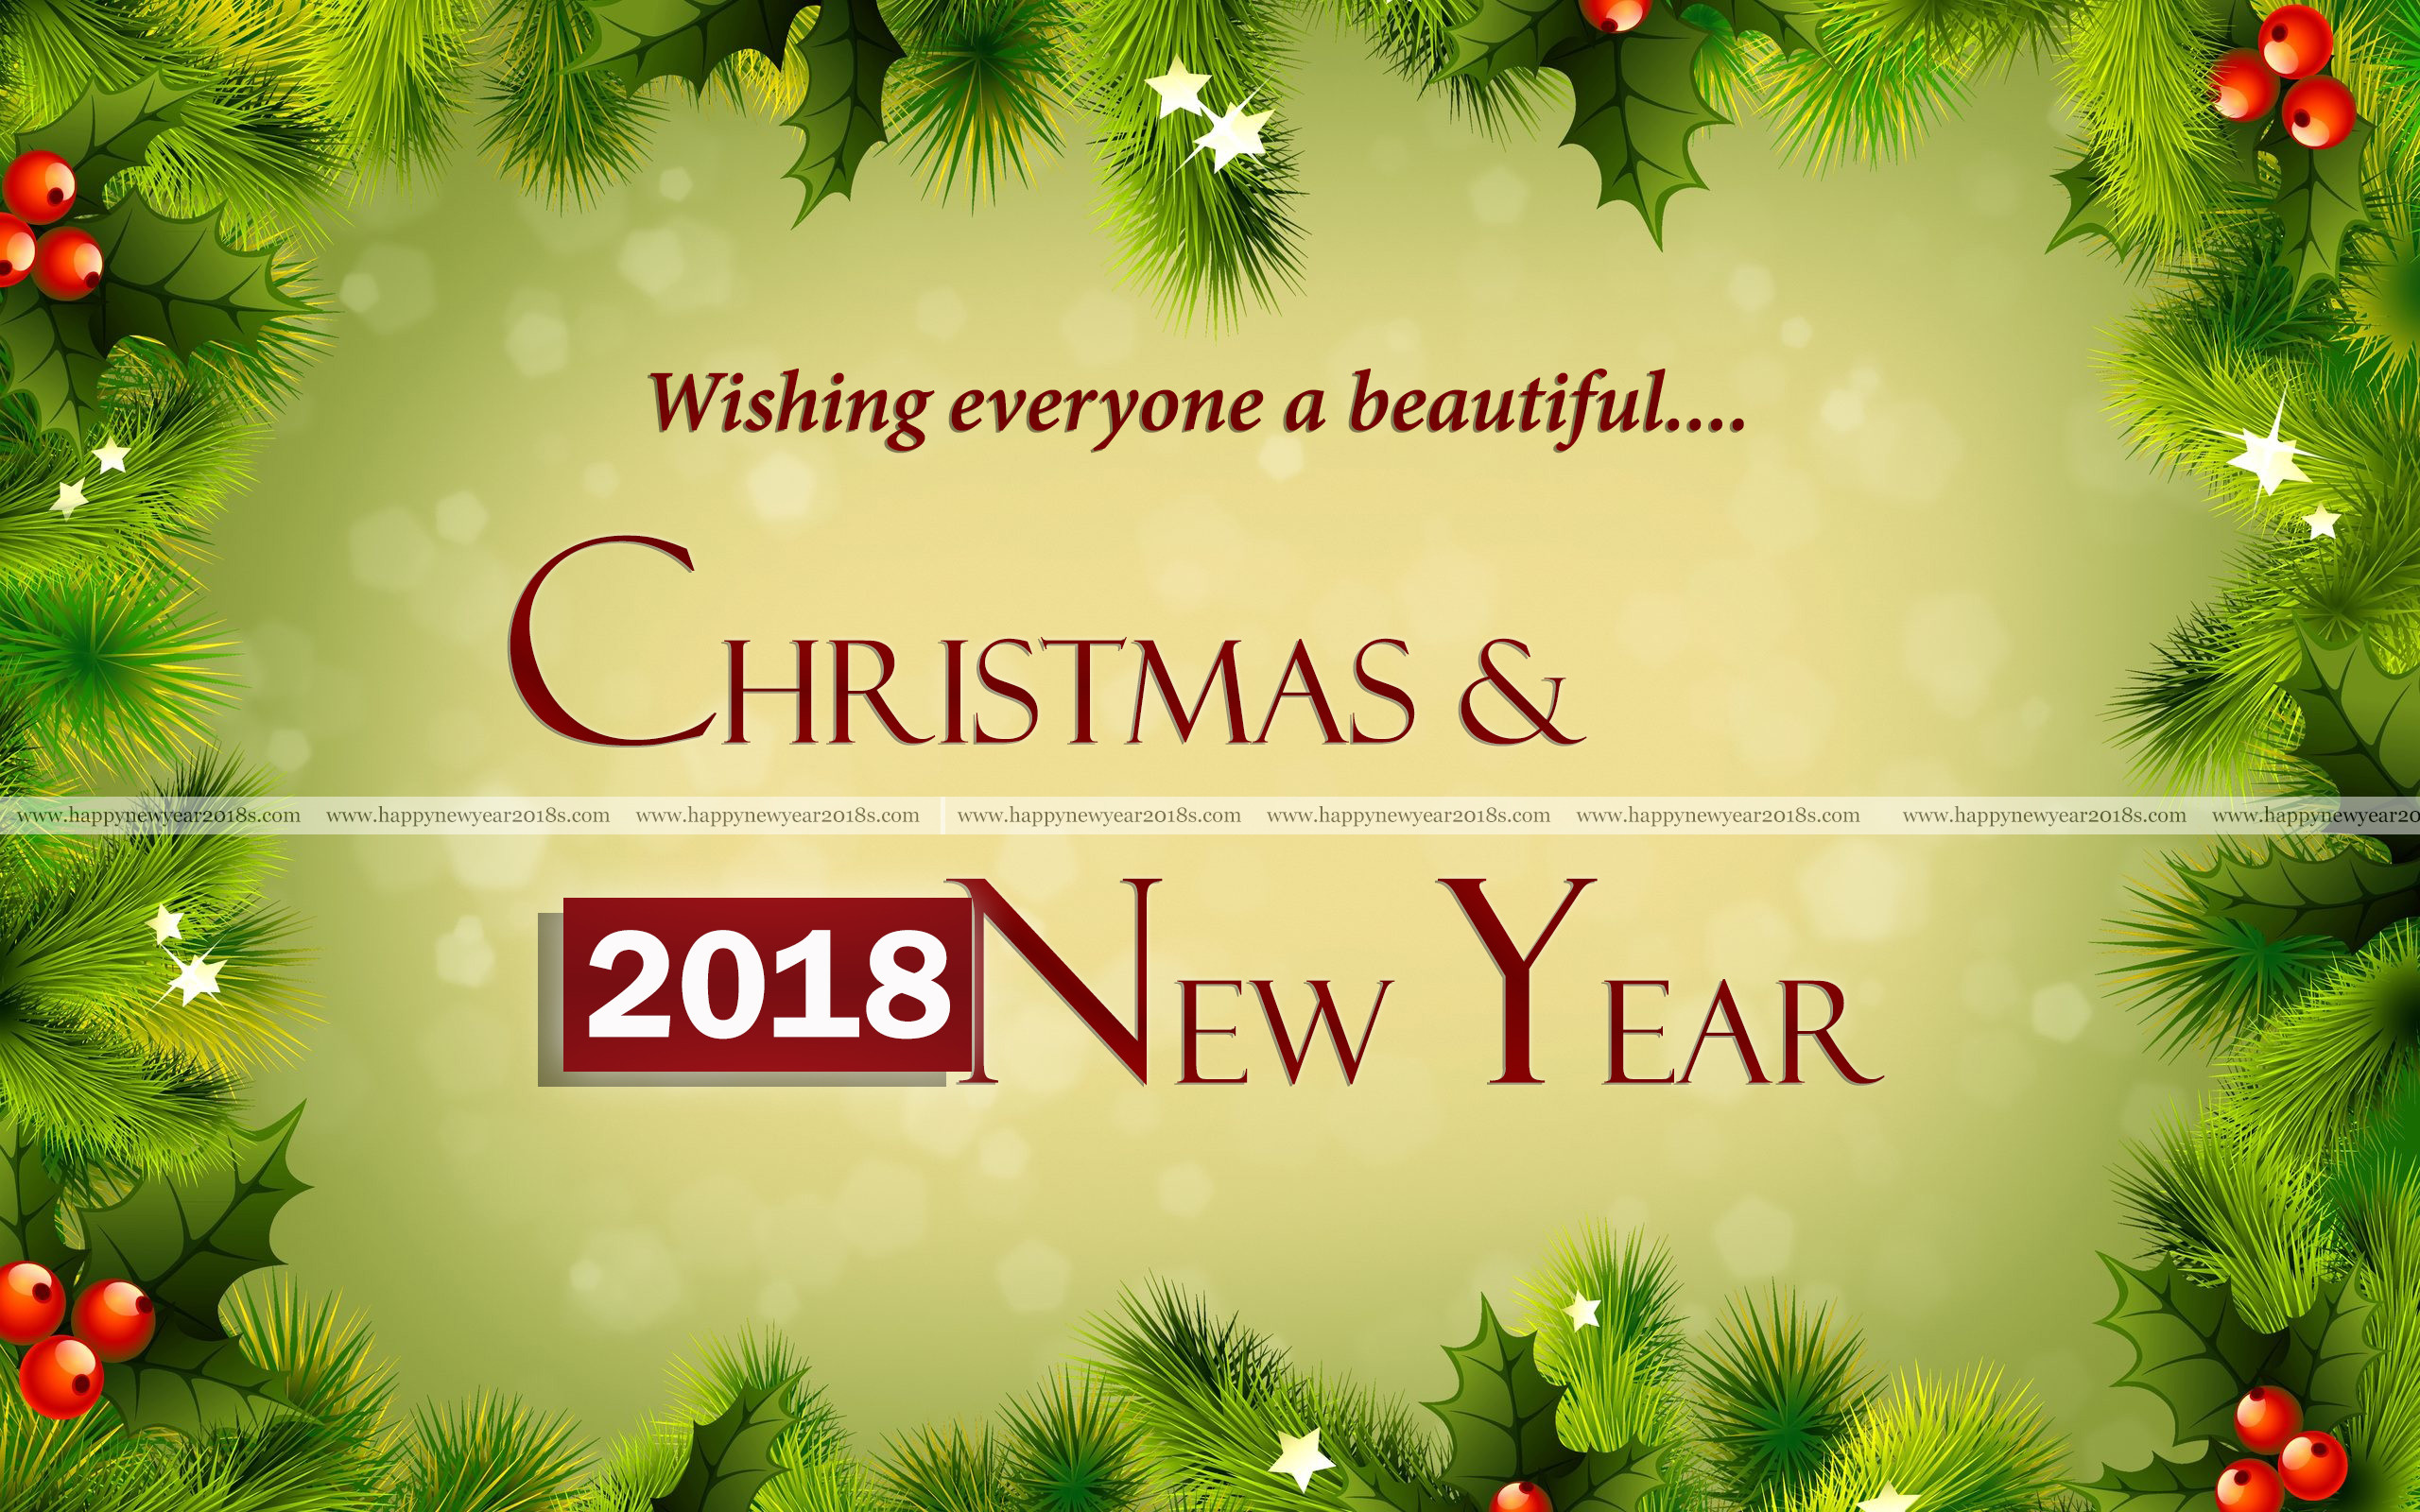 Merry Christmas Wallpaper 2018 71 Pictures